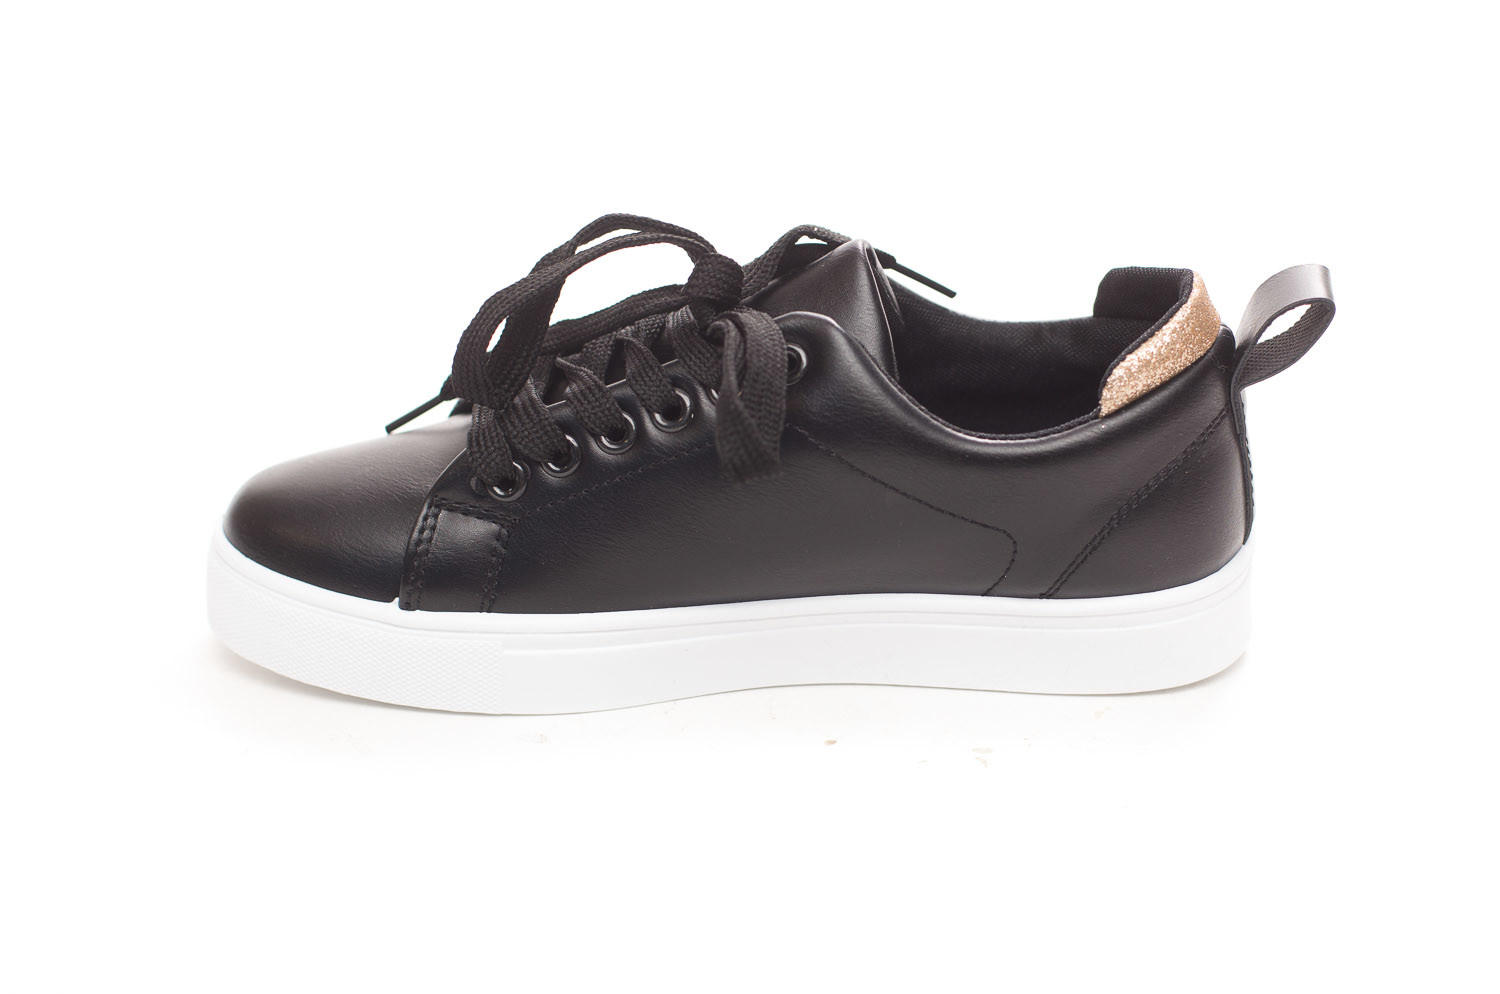 Soho Shoes Womens Casual Lace up Embroidery Action Sneakers